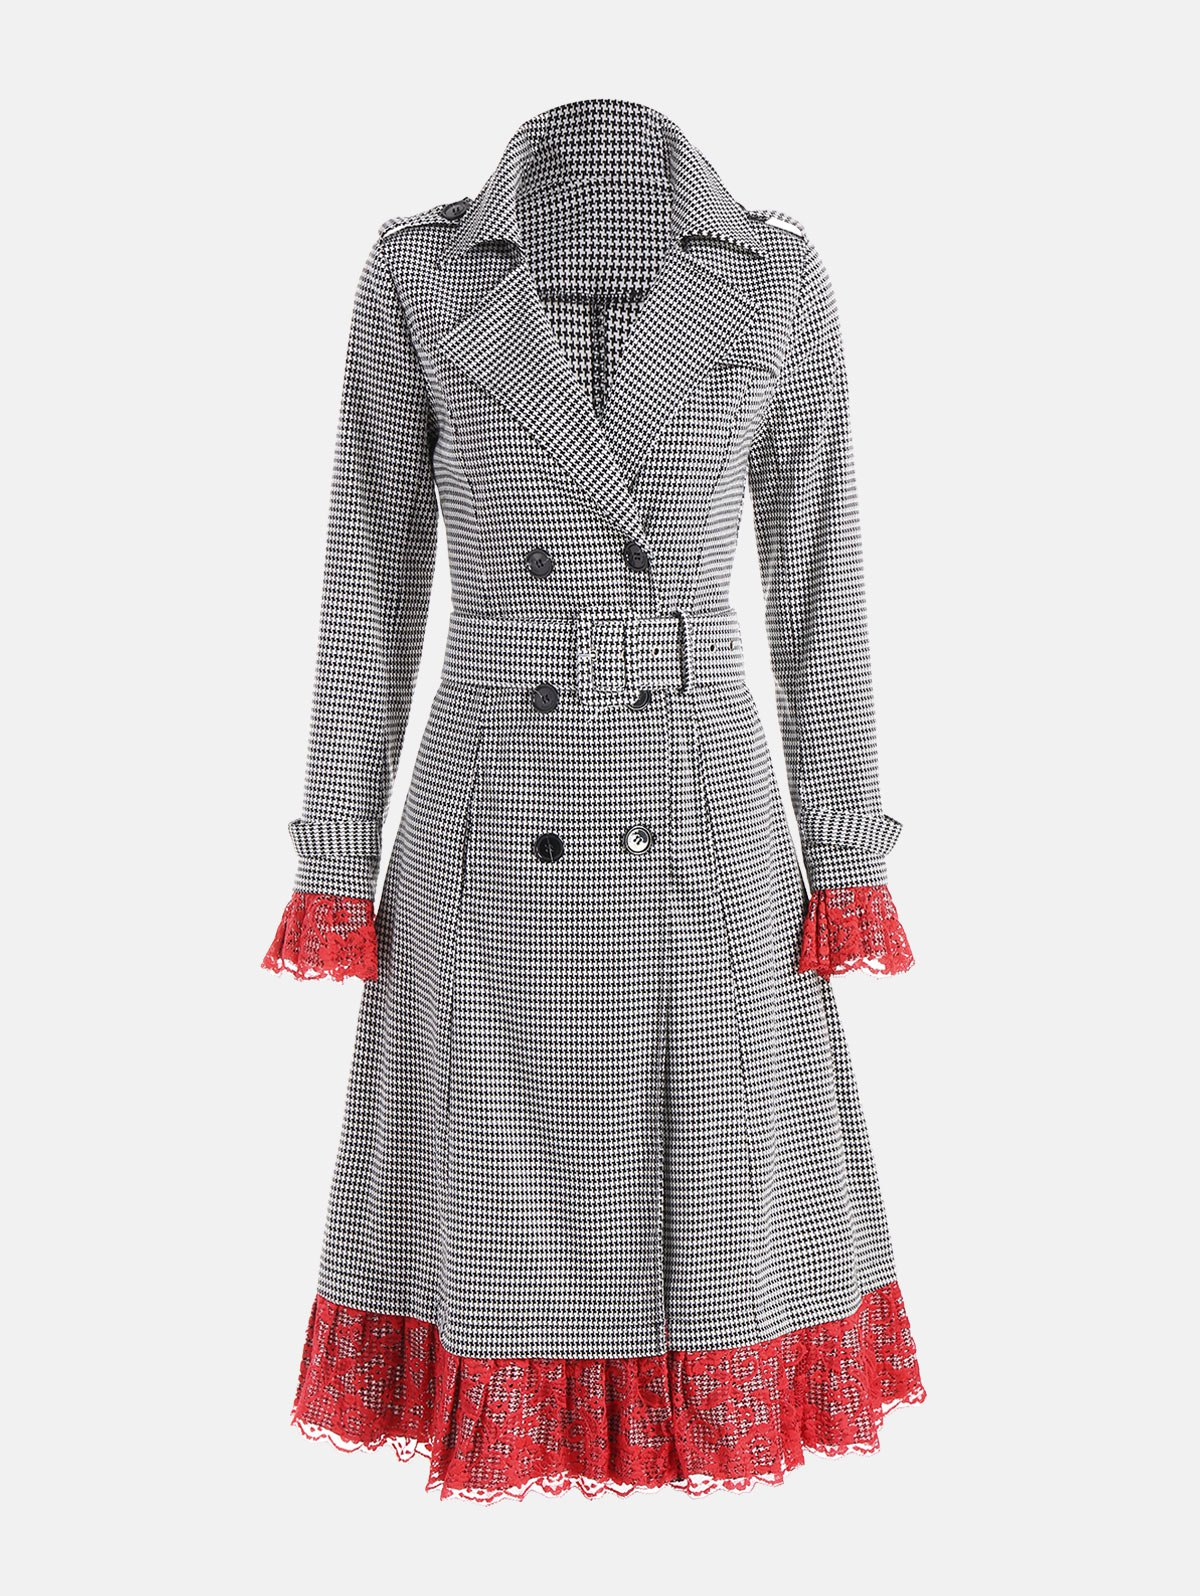 Belted Houndstooth Printed Lace Trim Long Coat - WHITE/BLACK 2XL